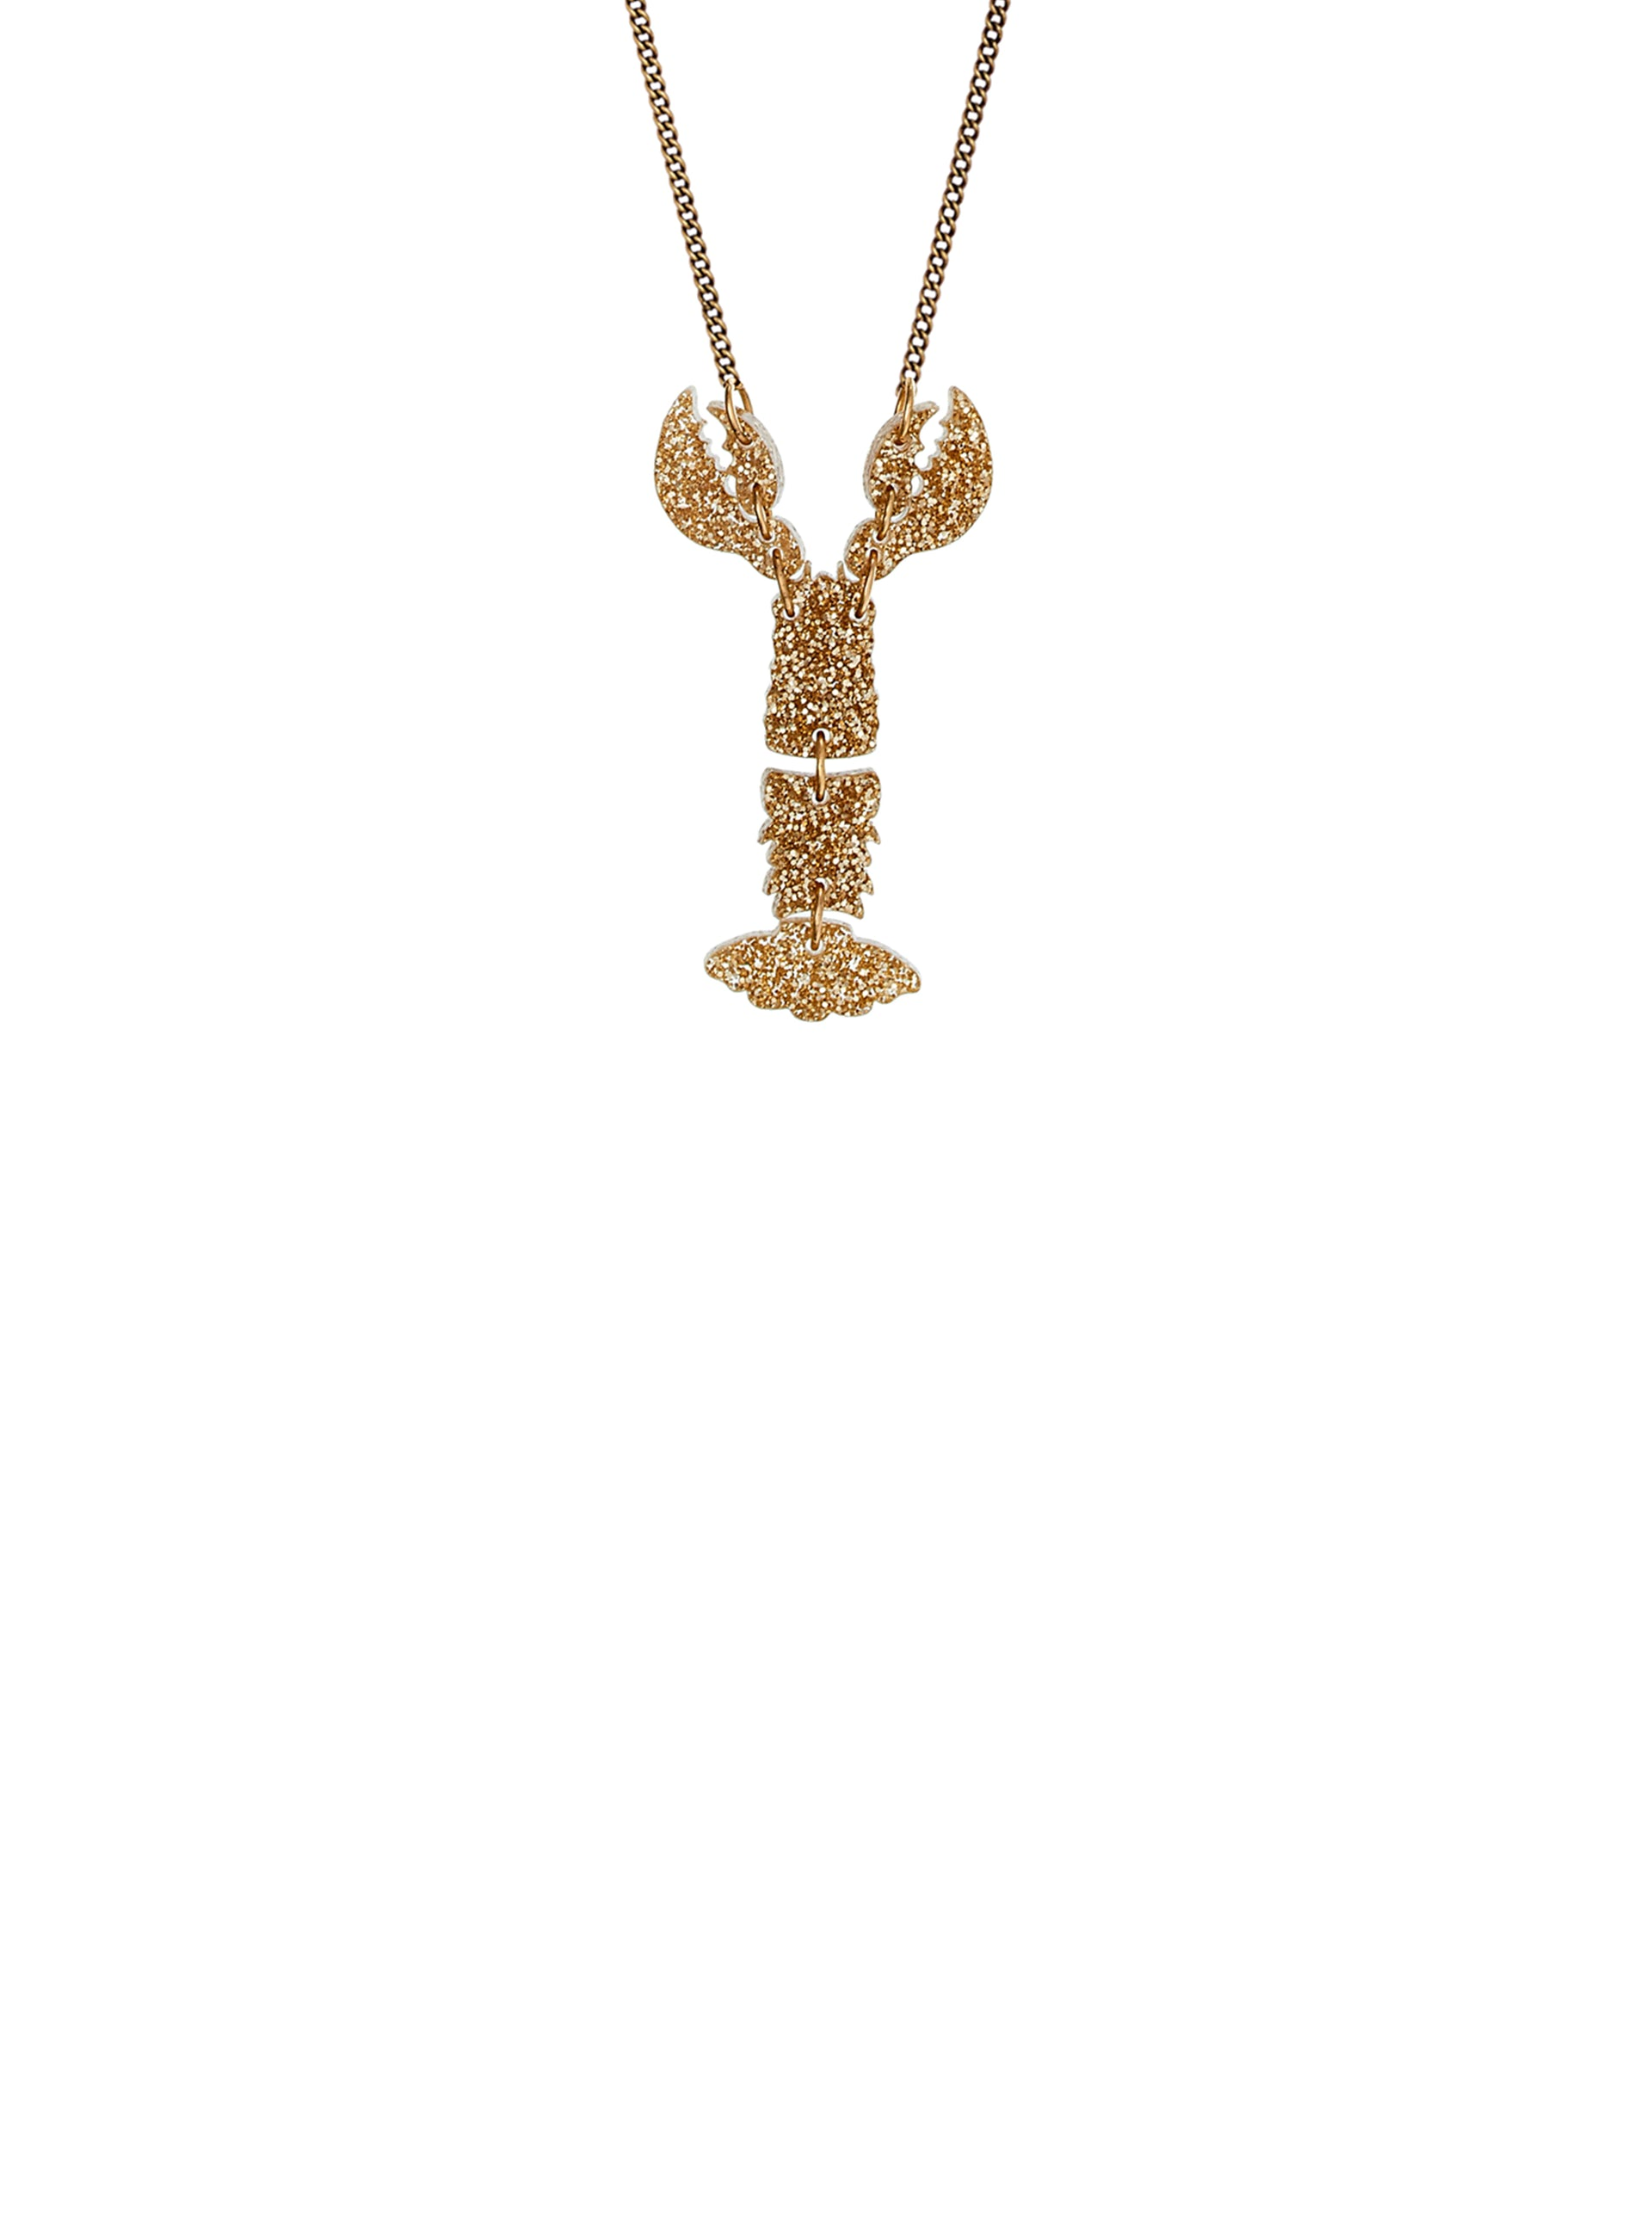 Mini Lobster Necklace - Glitter Gold